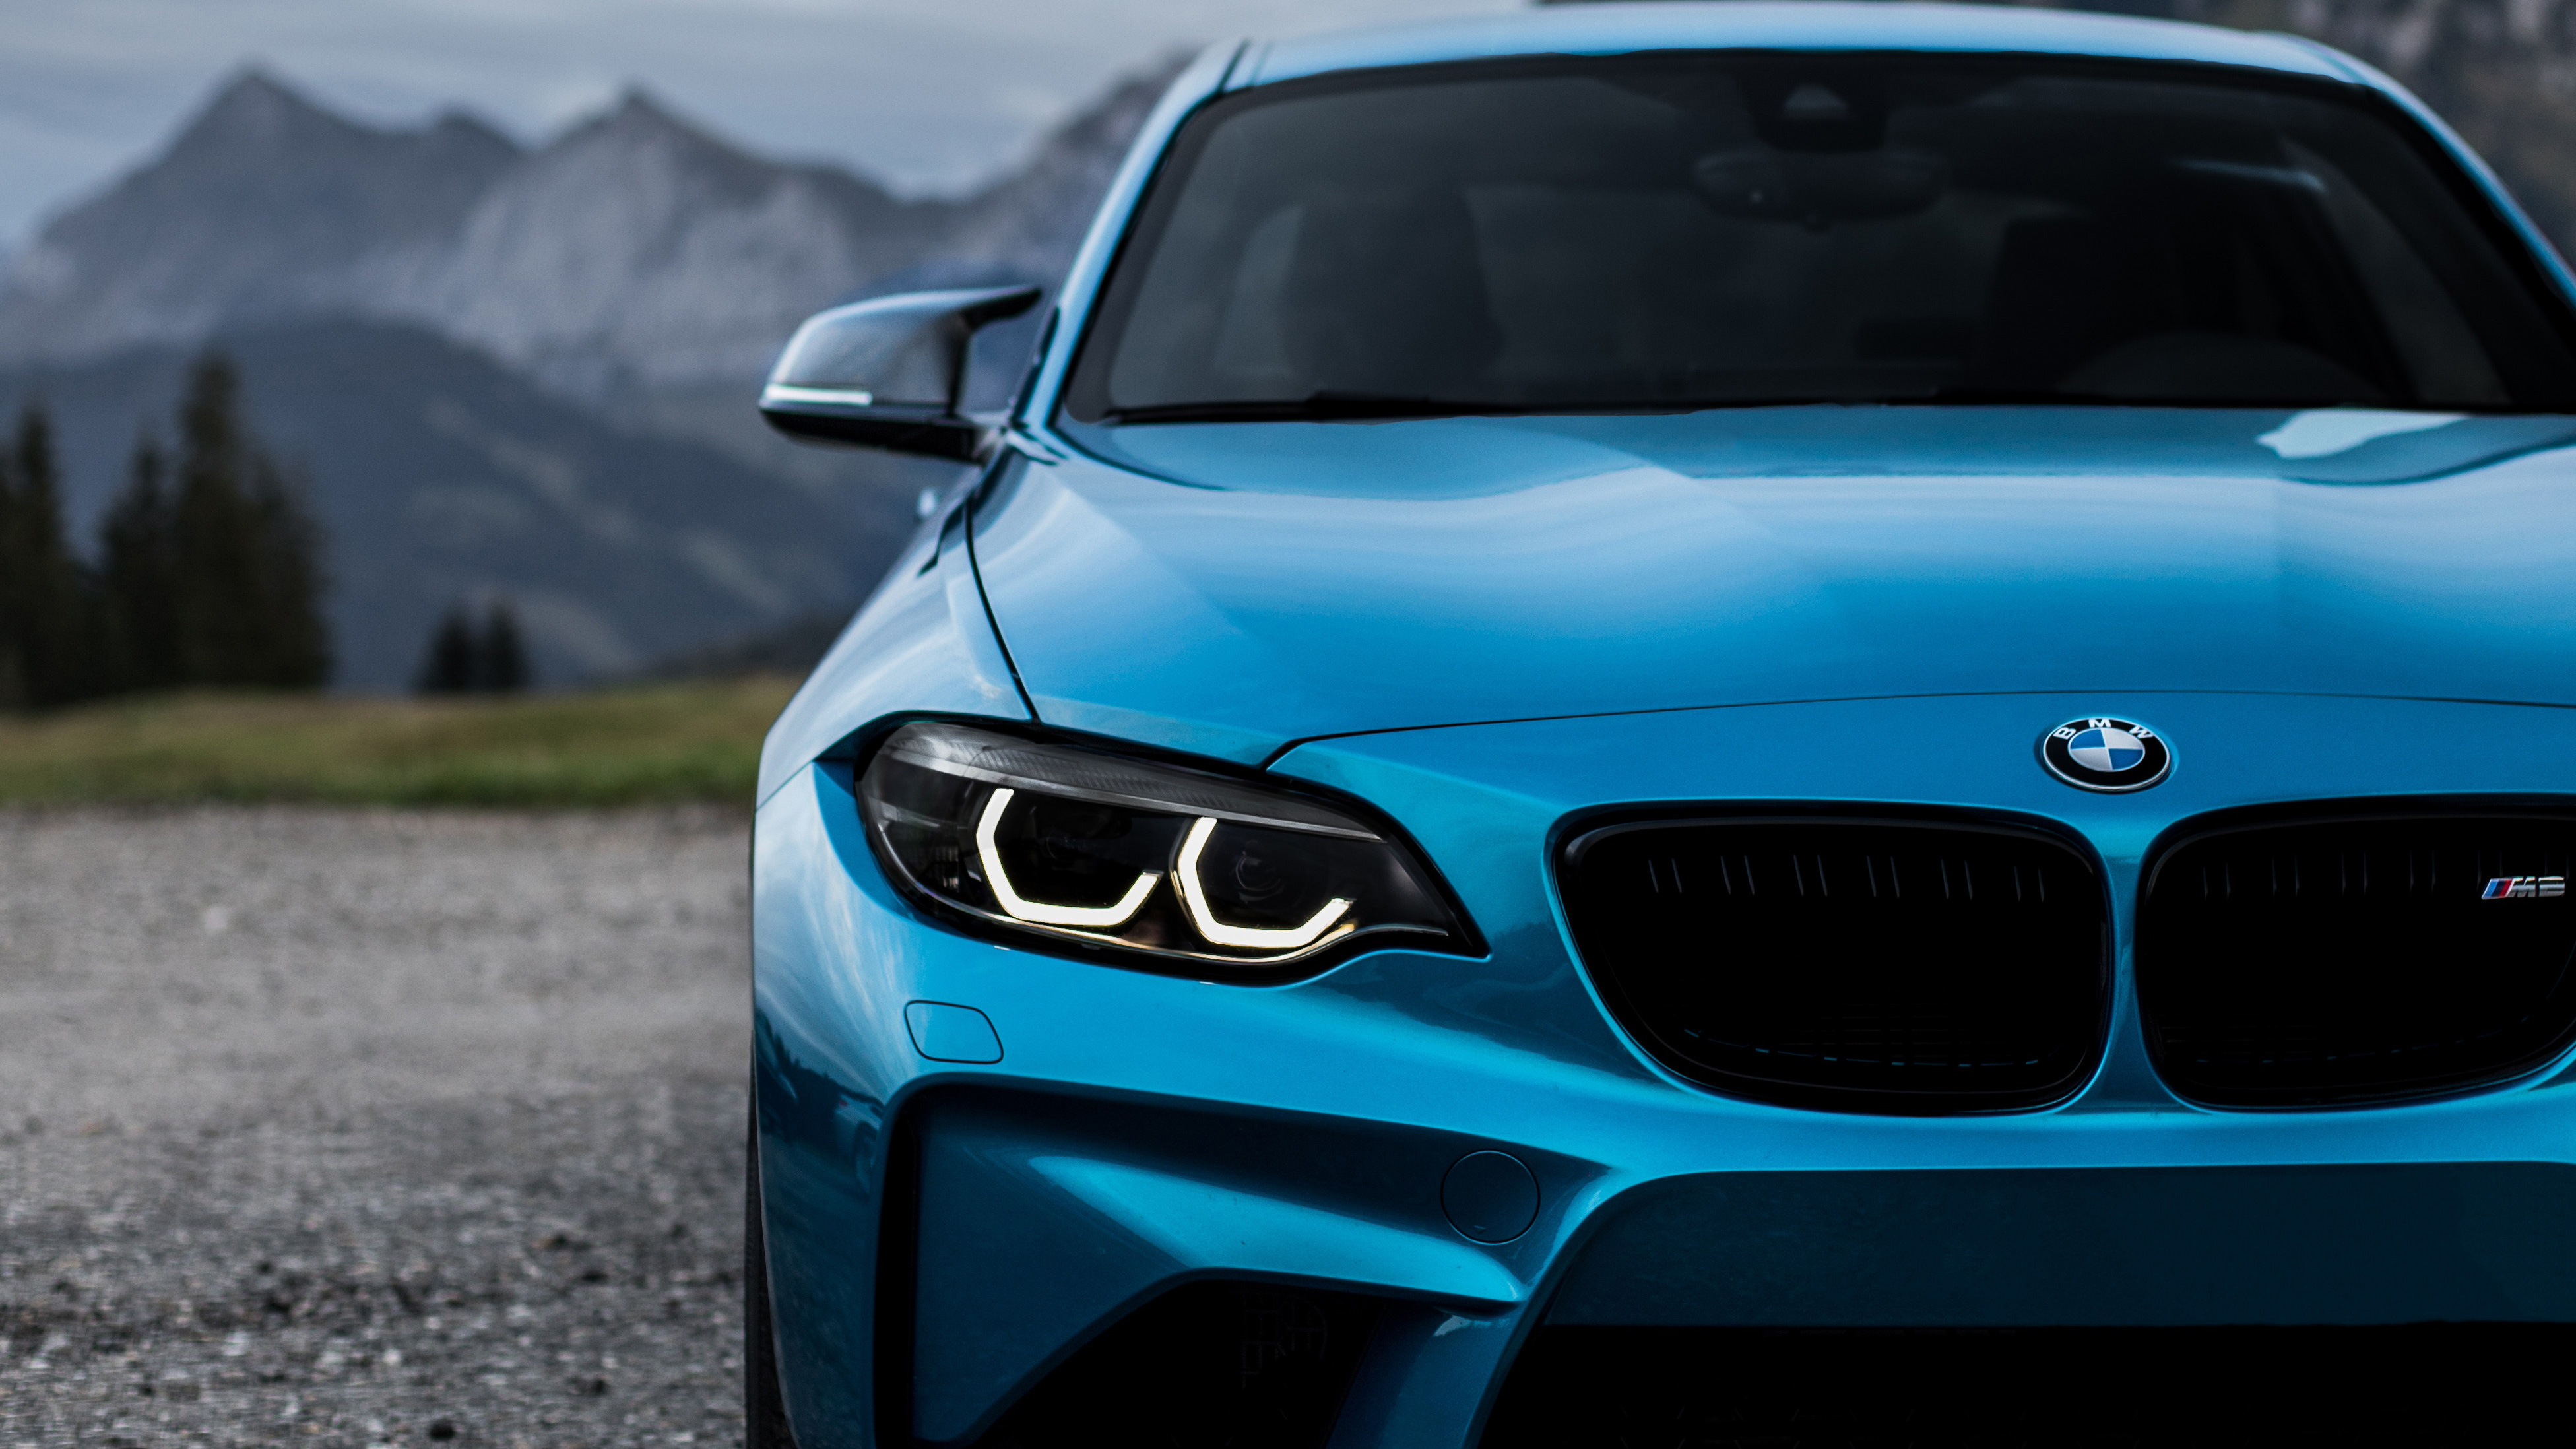 Bmw M2 Lci Hd Cars 4k Wallpapers Images Backgrounds Photos And Pictures